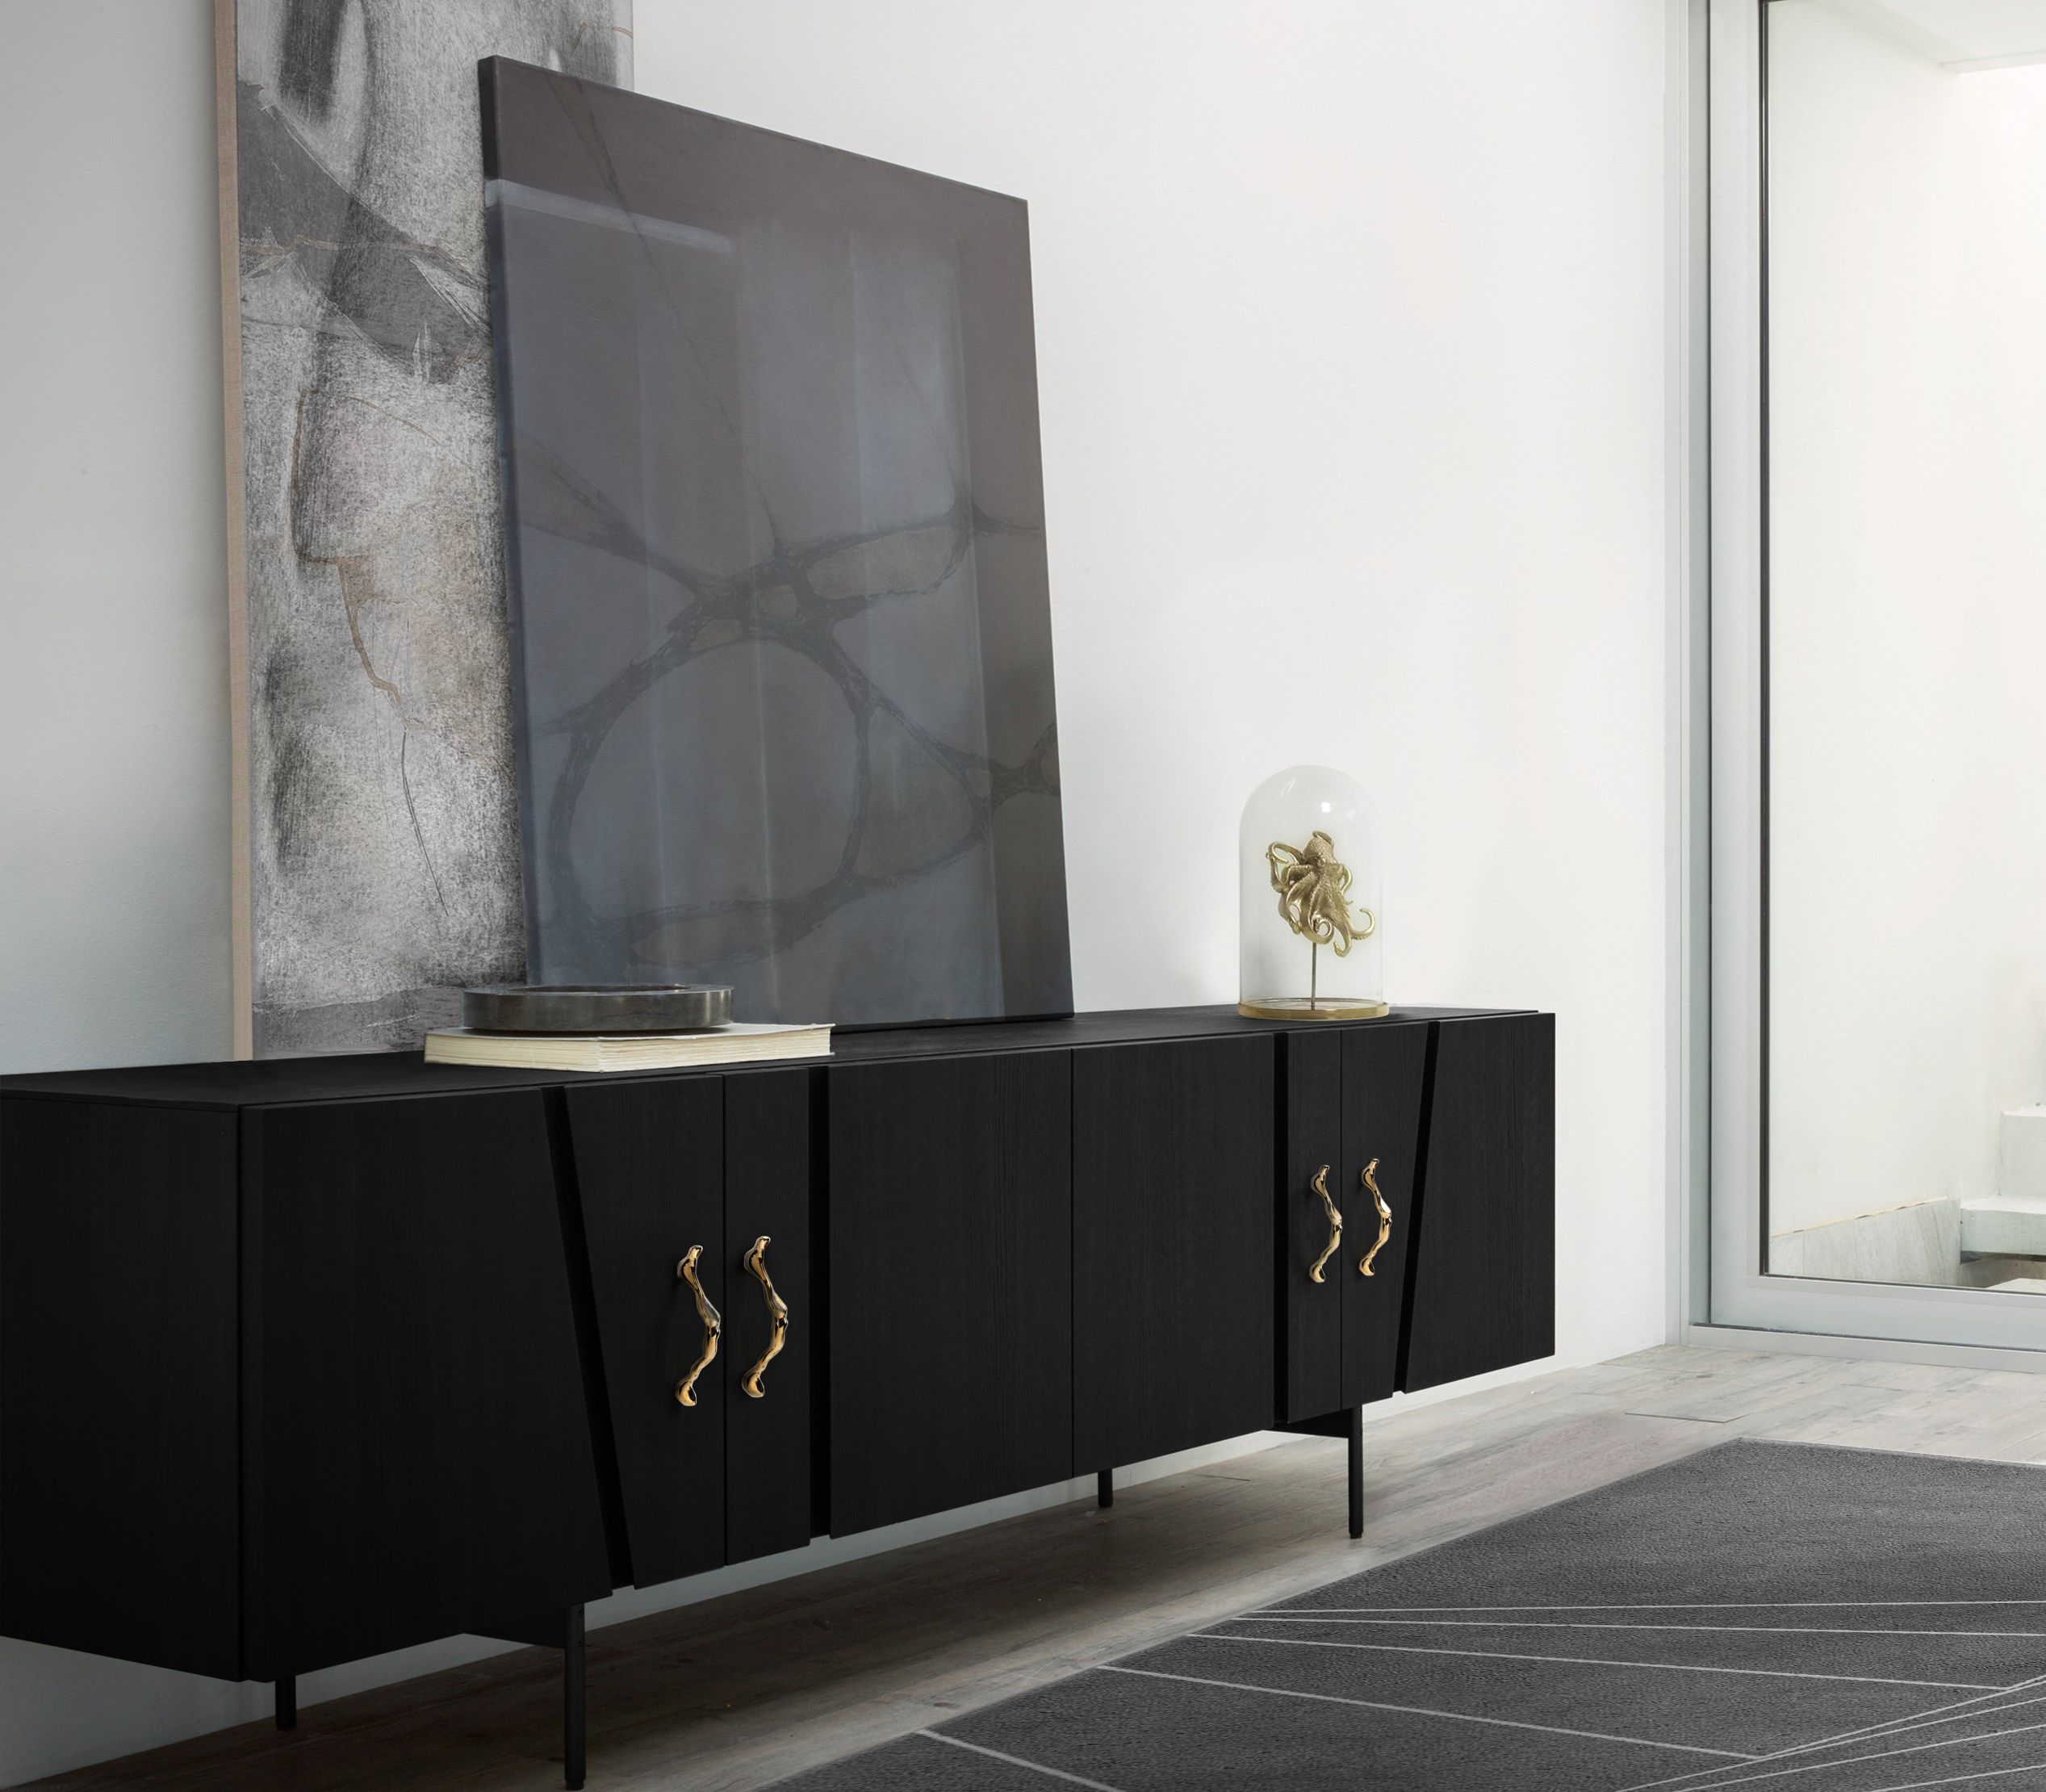 Pullcast Is Concerned About Their Details And Their Confession If You Still Have Doubts See On Pullcast Eu Ha In 2020 Living Design Contemporary Decor Best Interior